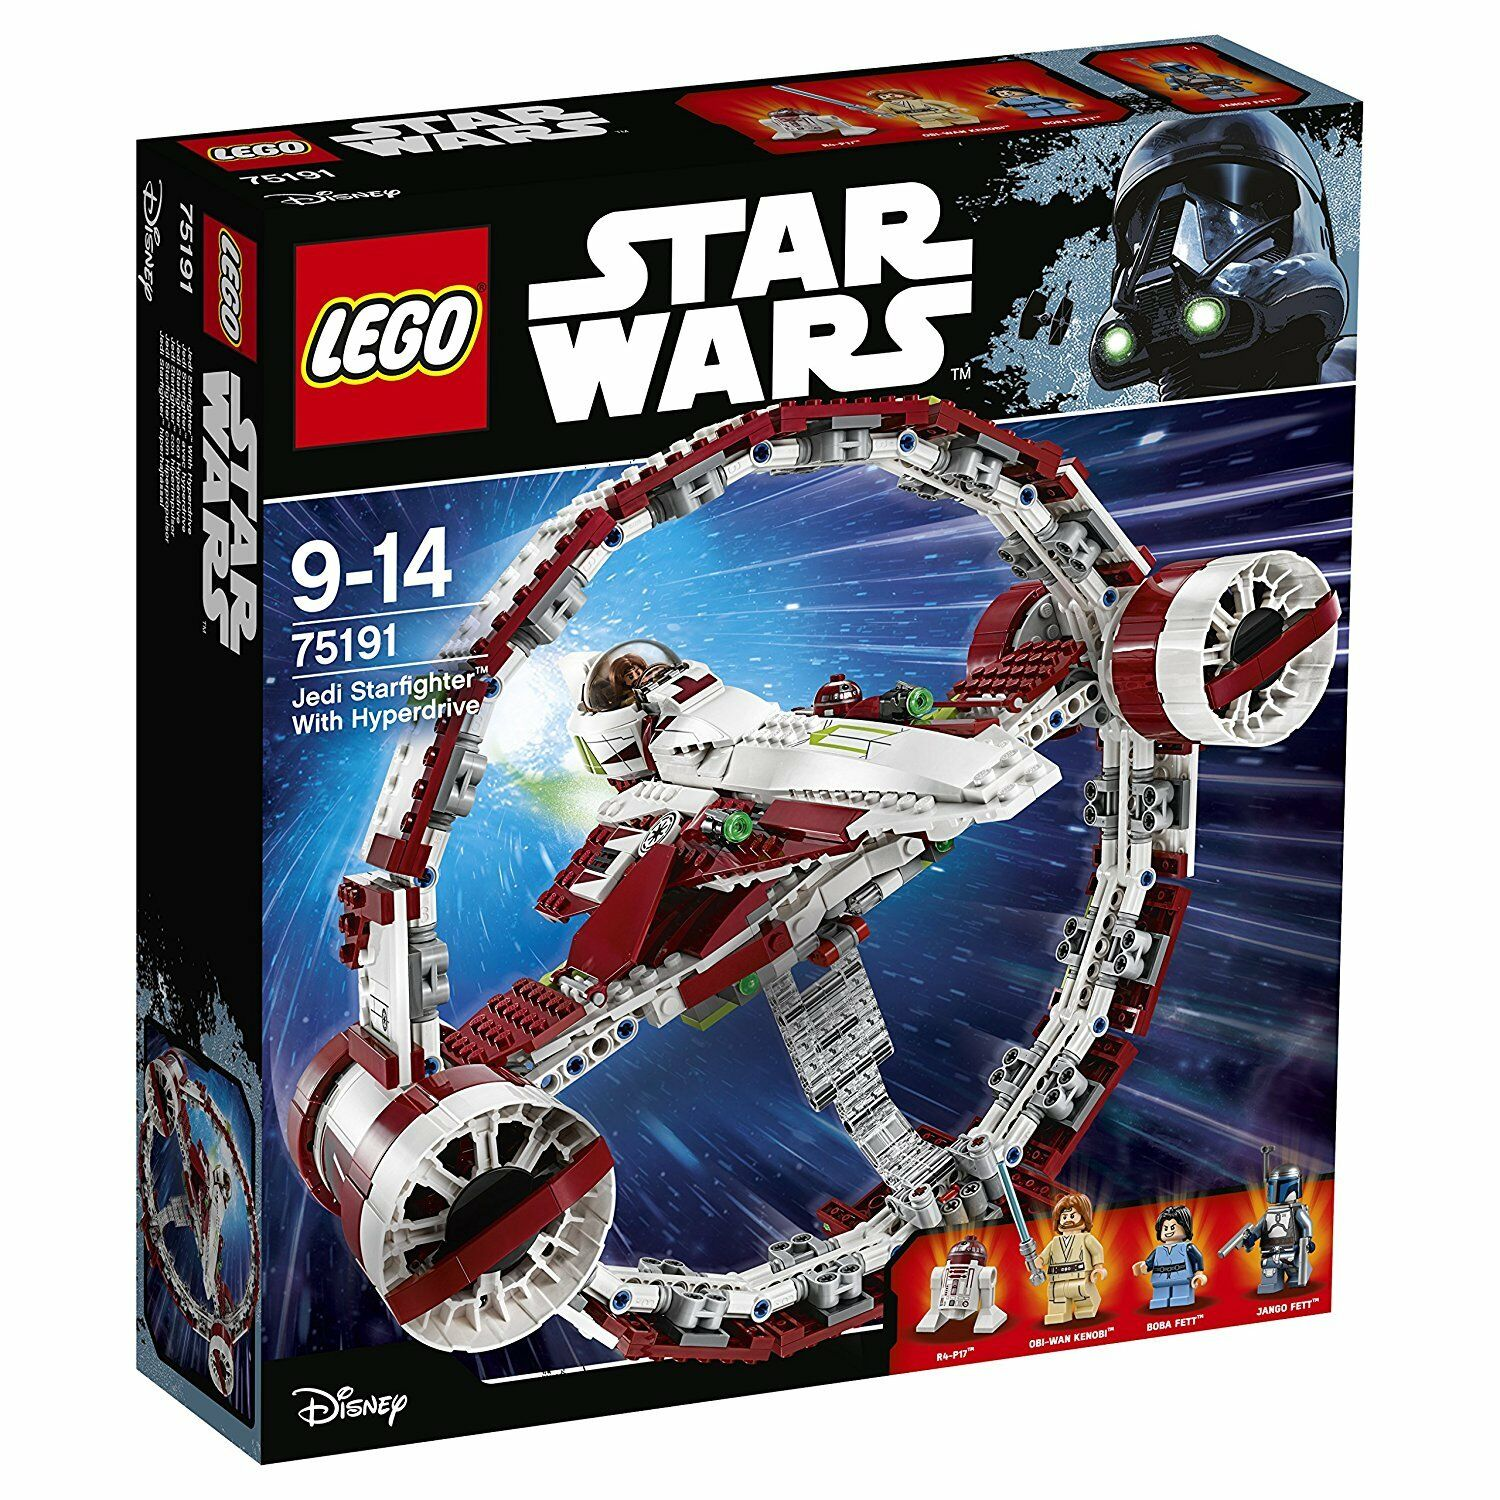 LEGO 7519 - Star Wars - Jedi Starfighter with Hyperdrive - NEW